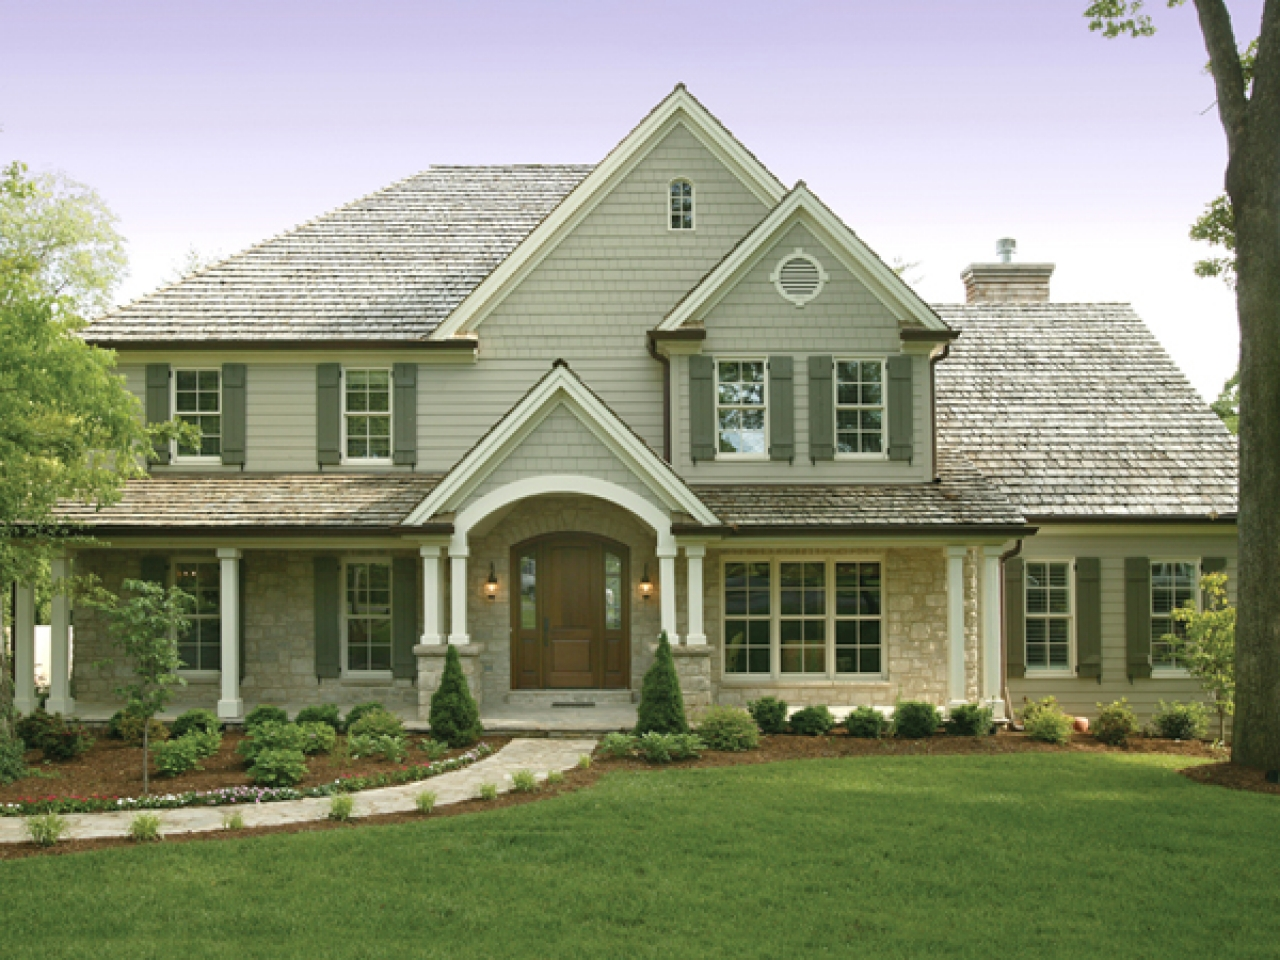 Traditional Home Designs Traditional 2 Story House Plans Modern 2 Story House Plans